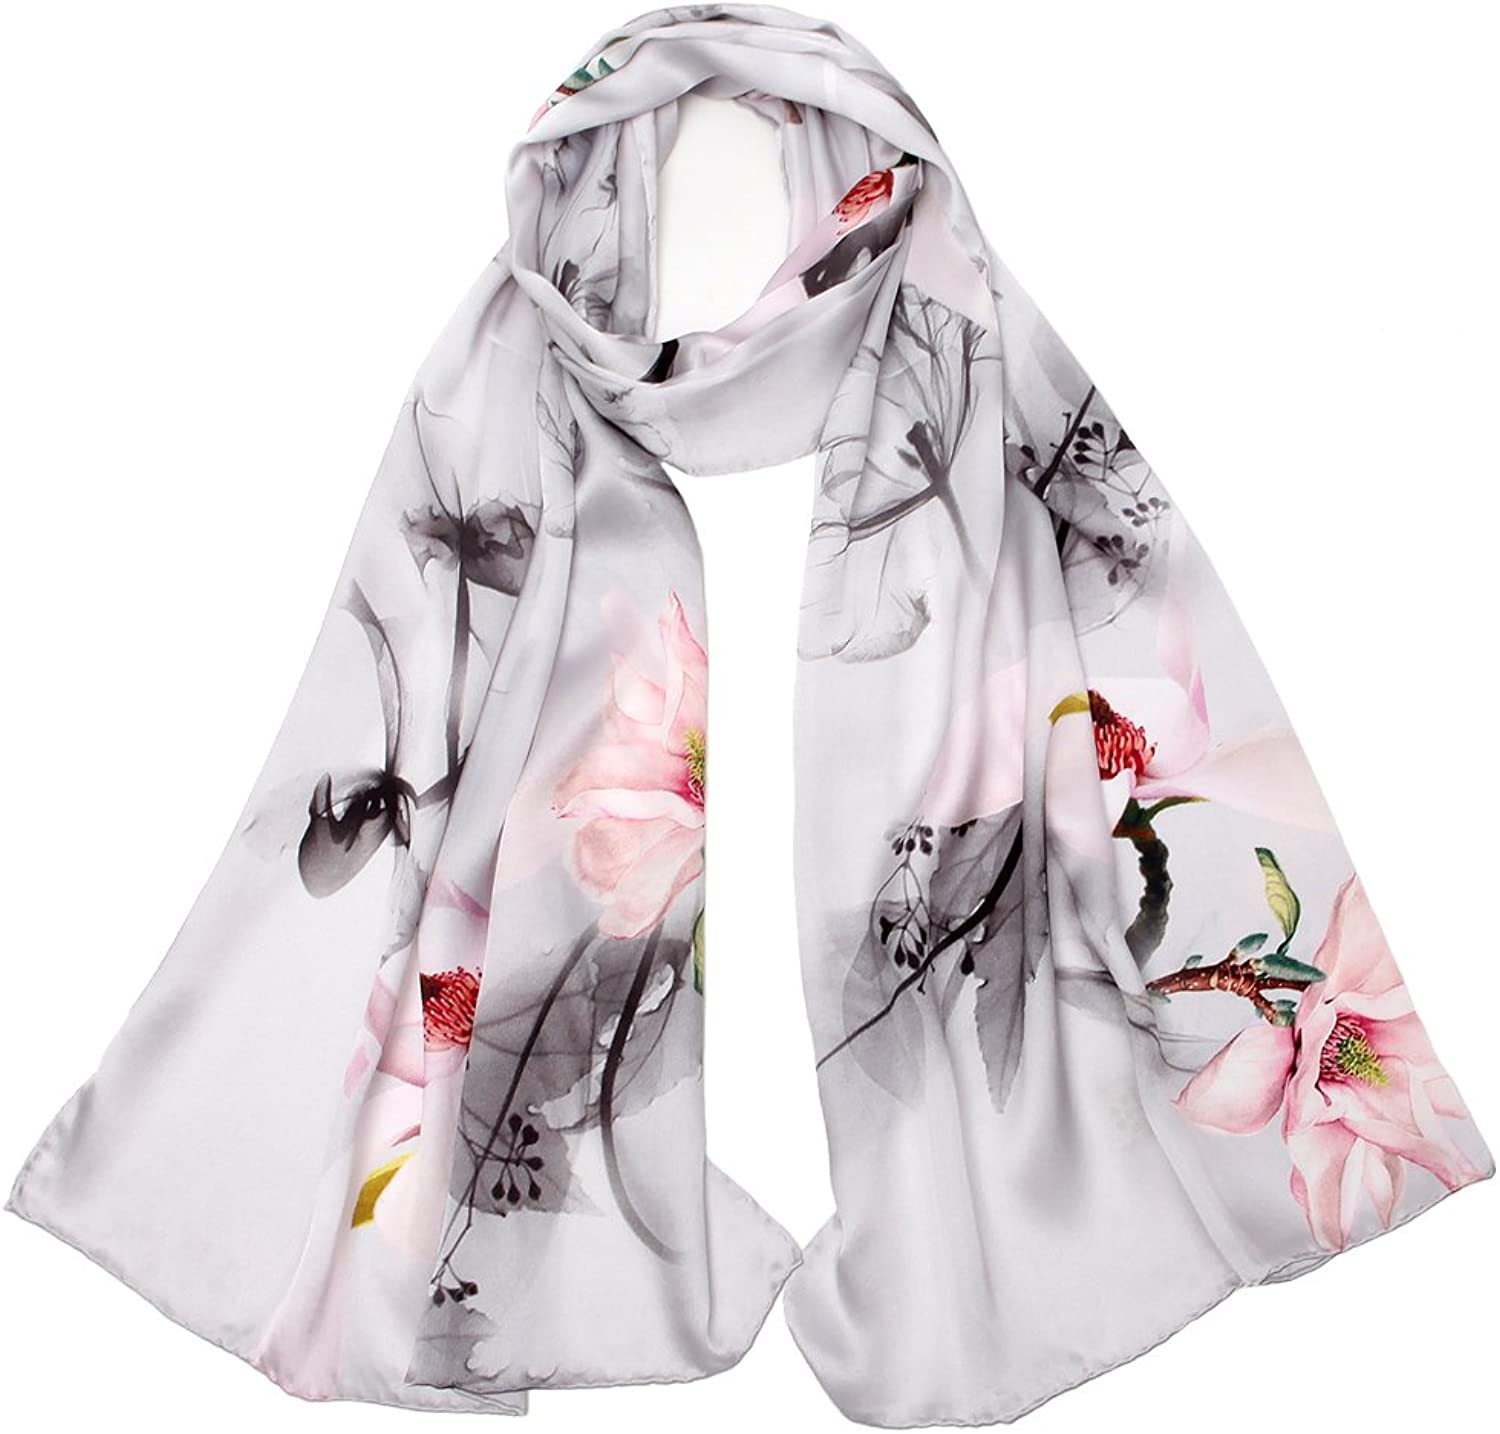 100% Mulberry Silk Scarf Large Wraps Hair Scarves Fashion Pattern Shawls Neck Scarfs for Women